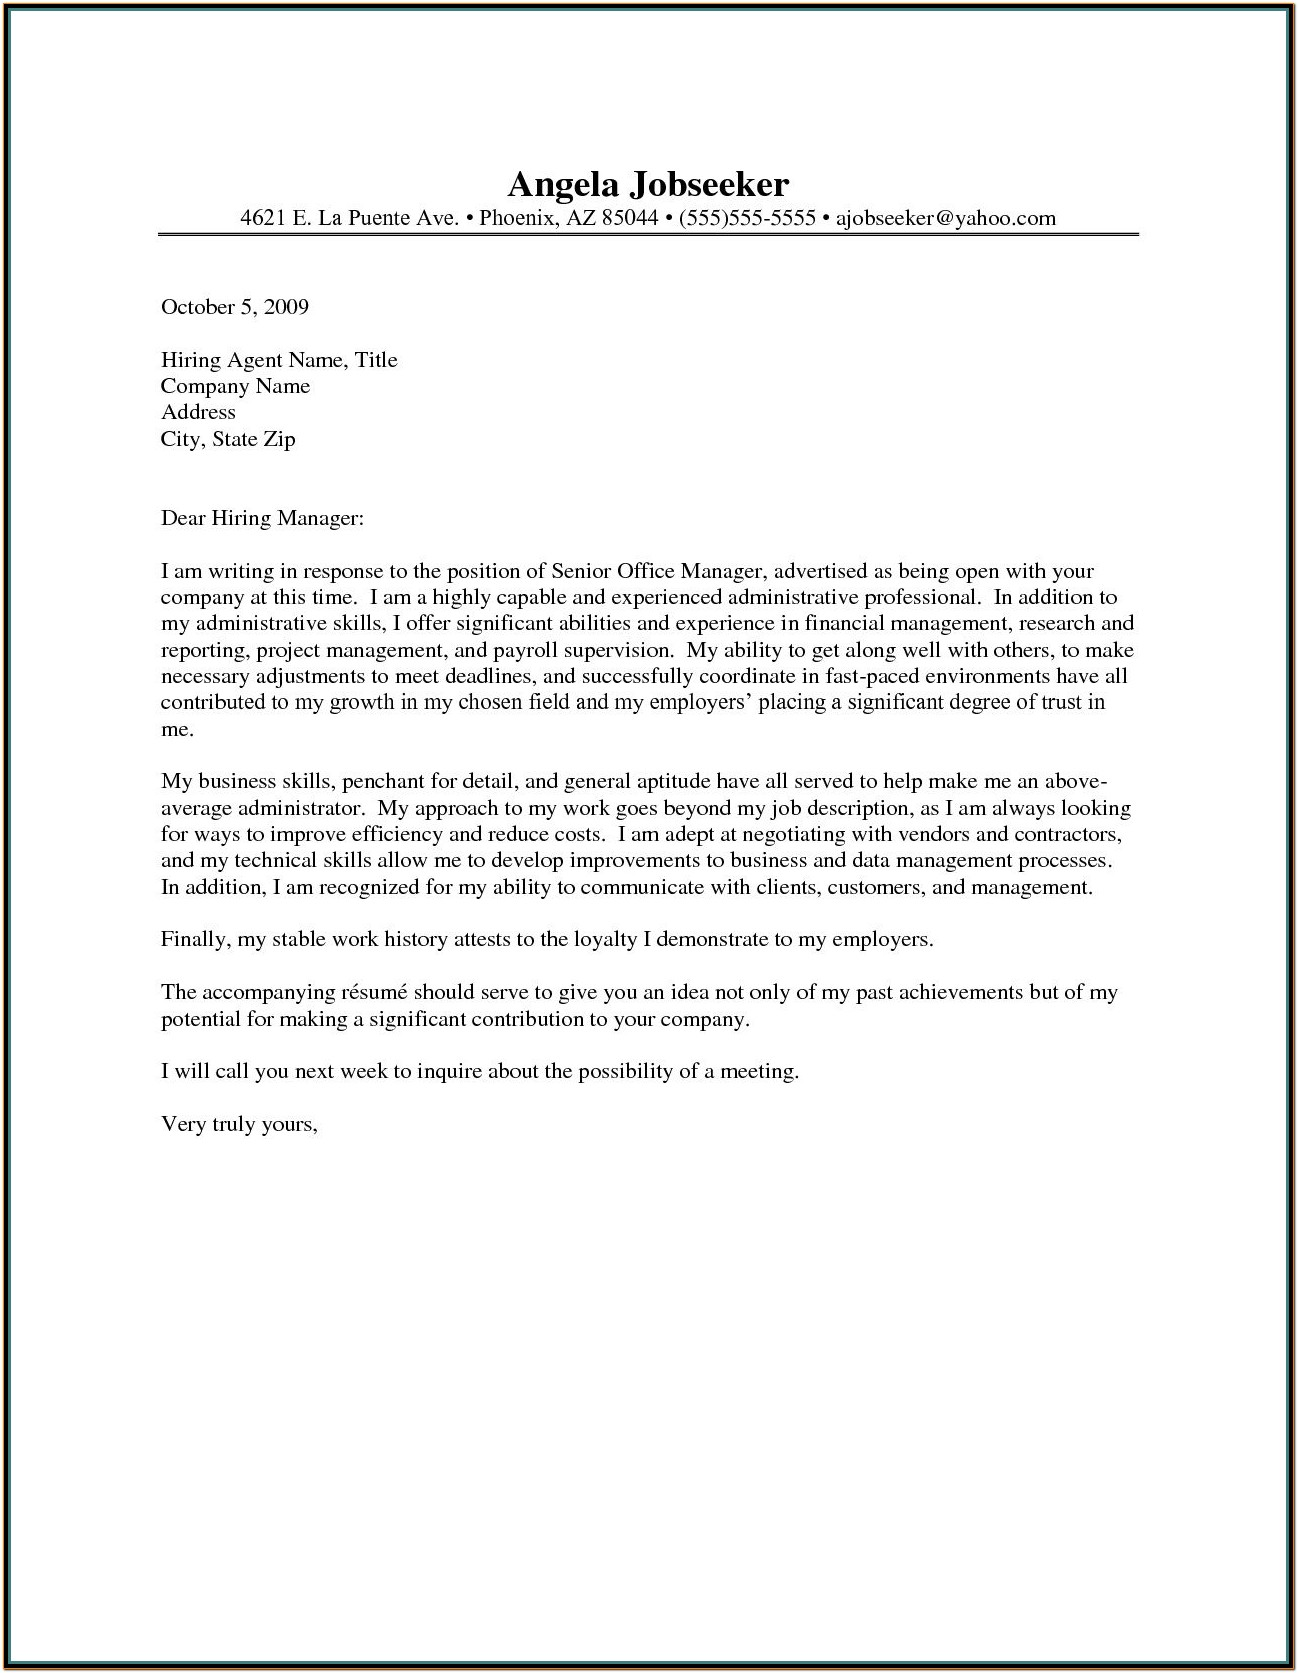 Resume Cover Letter Example Administrative Position